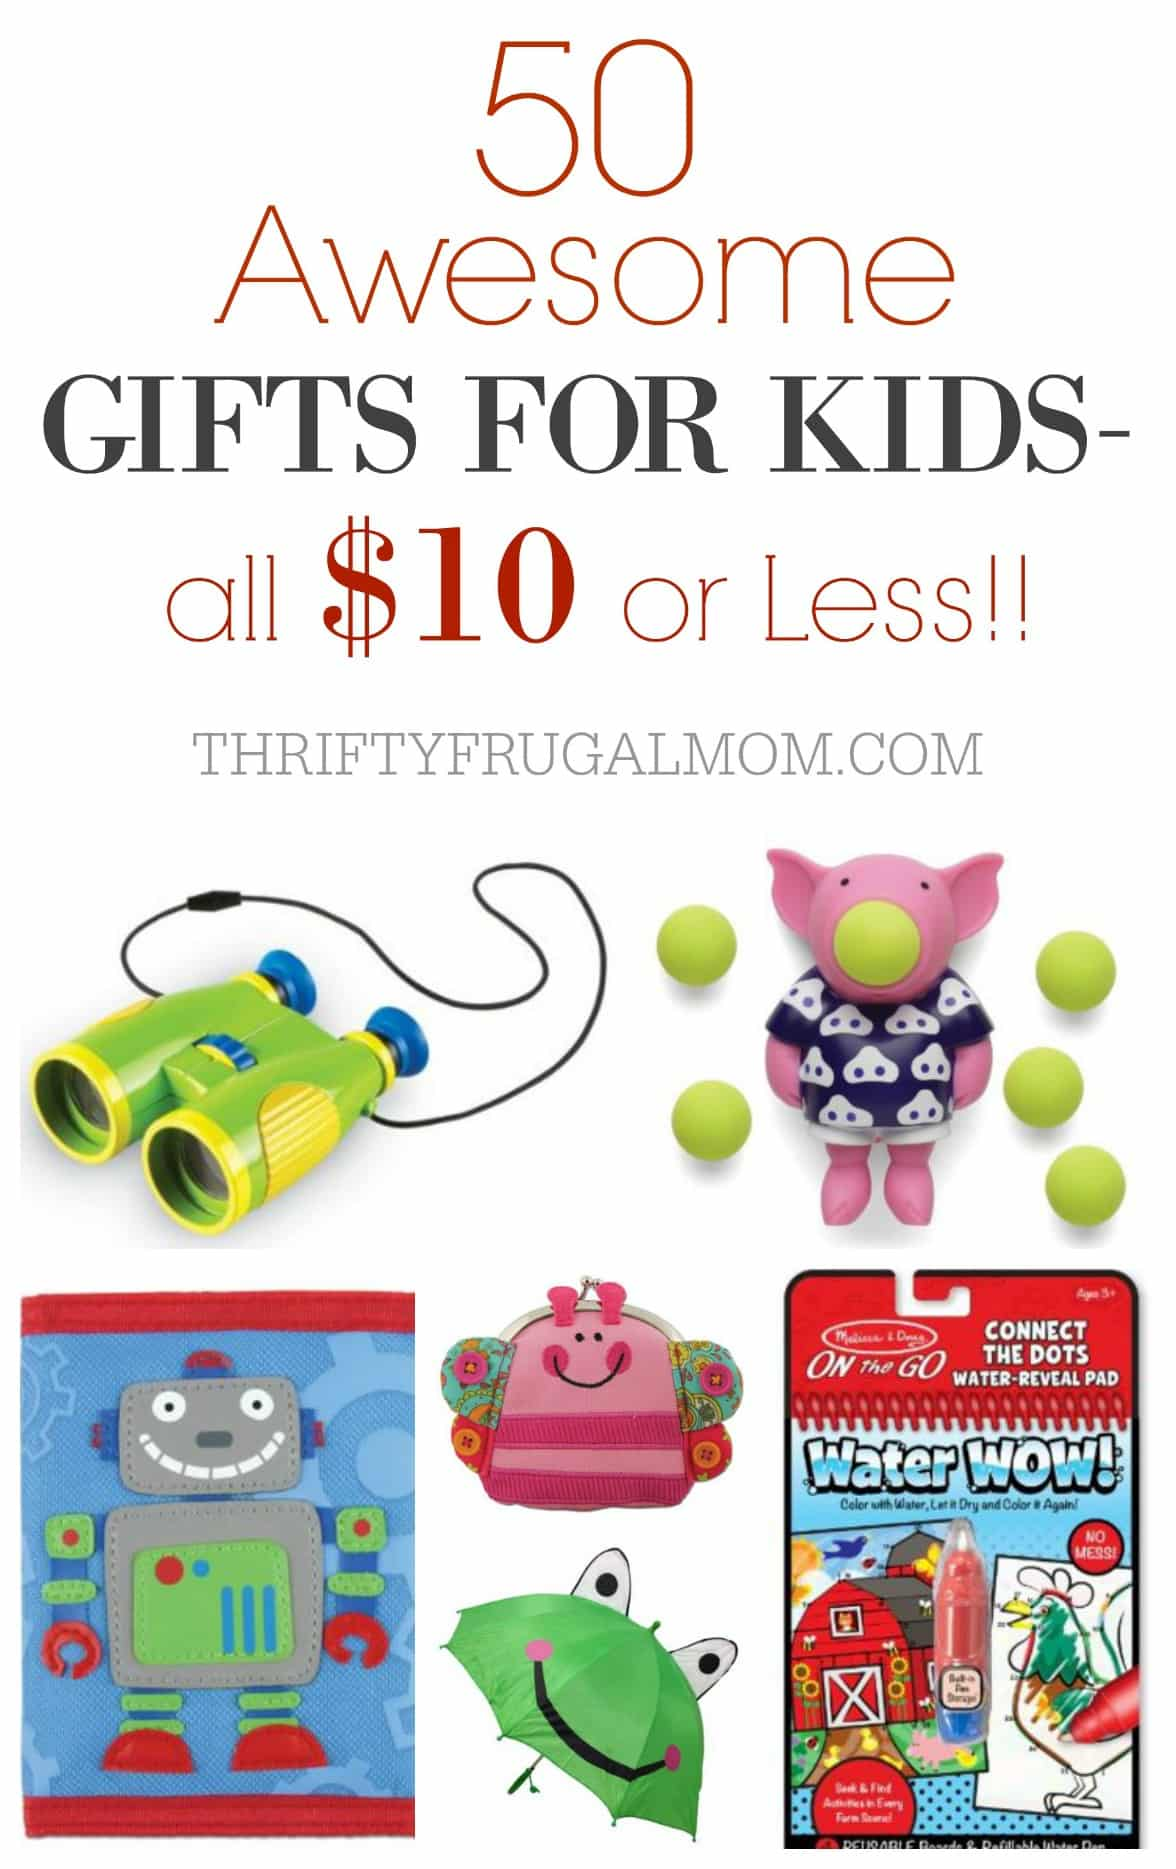 50 Awesome Gifts for Kids That Cost $10 or Less